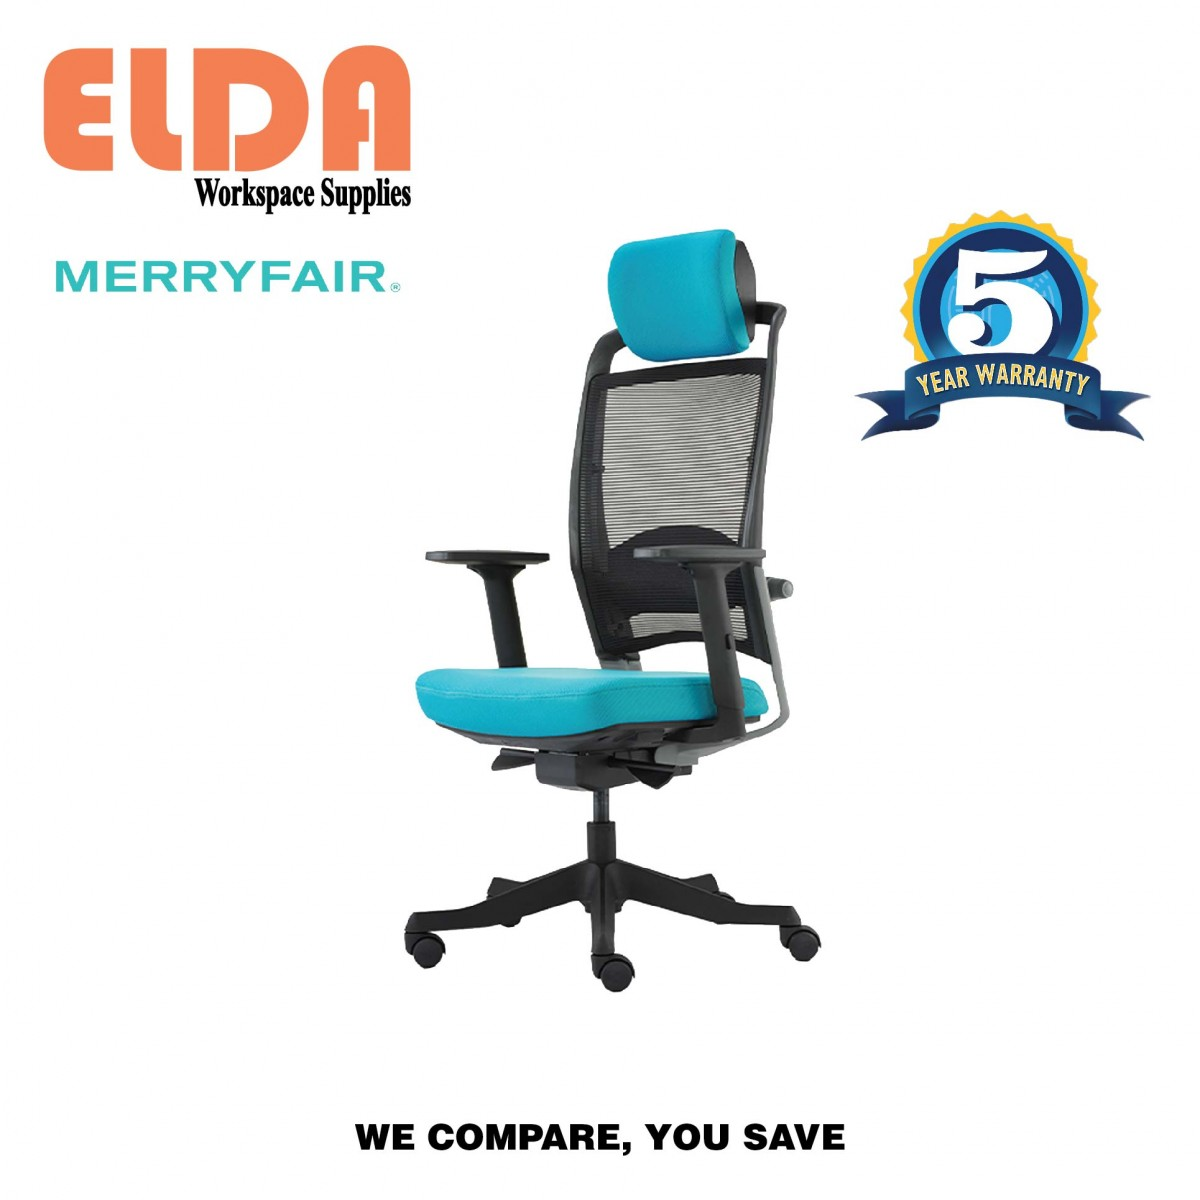 Merryfair Fulkrum